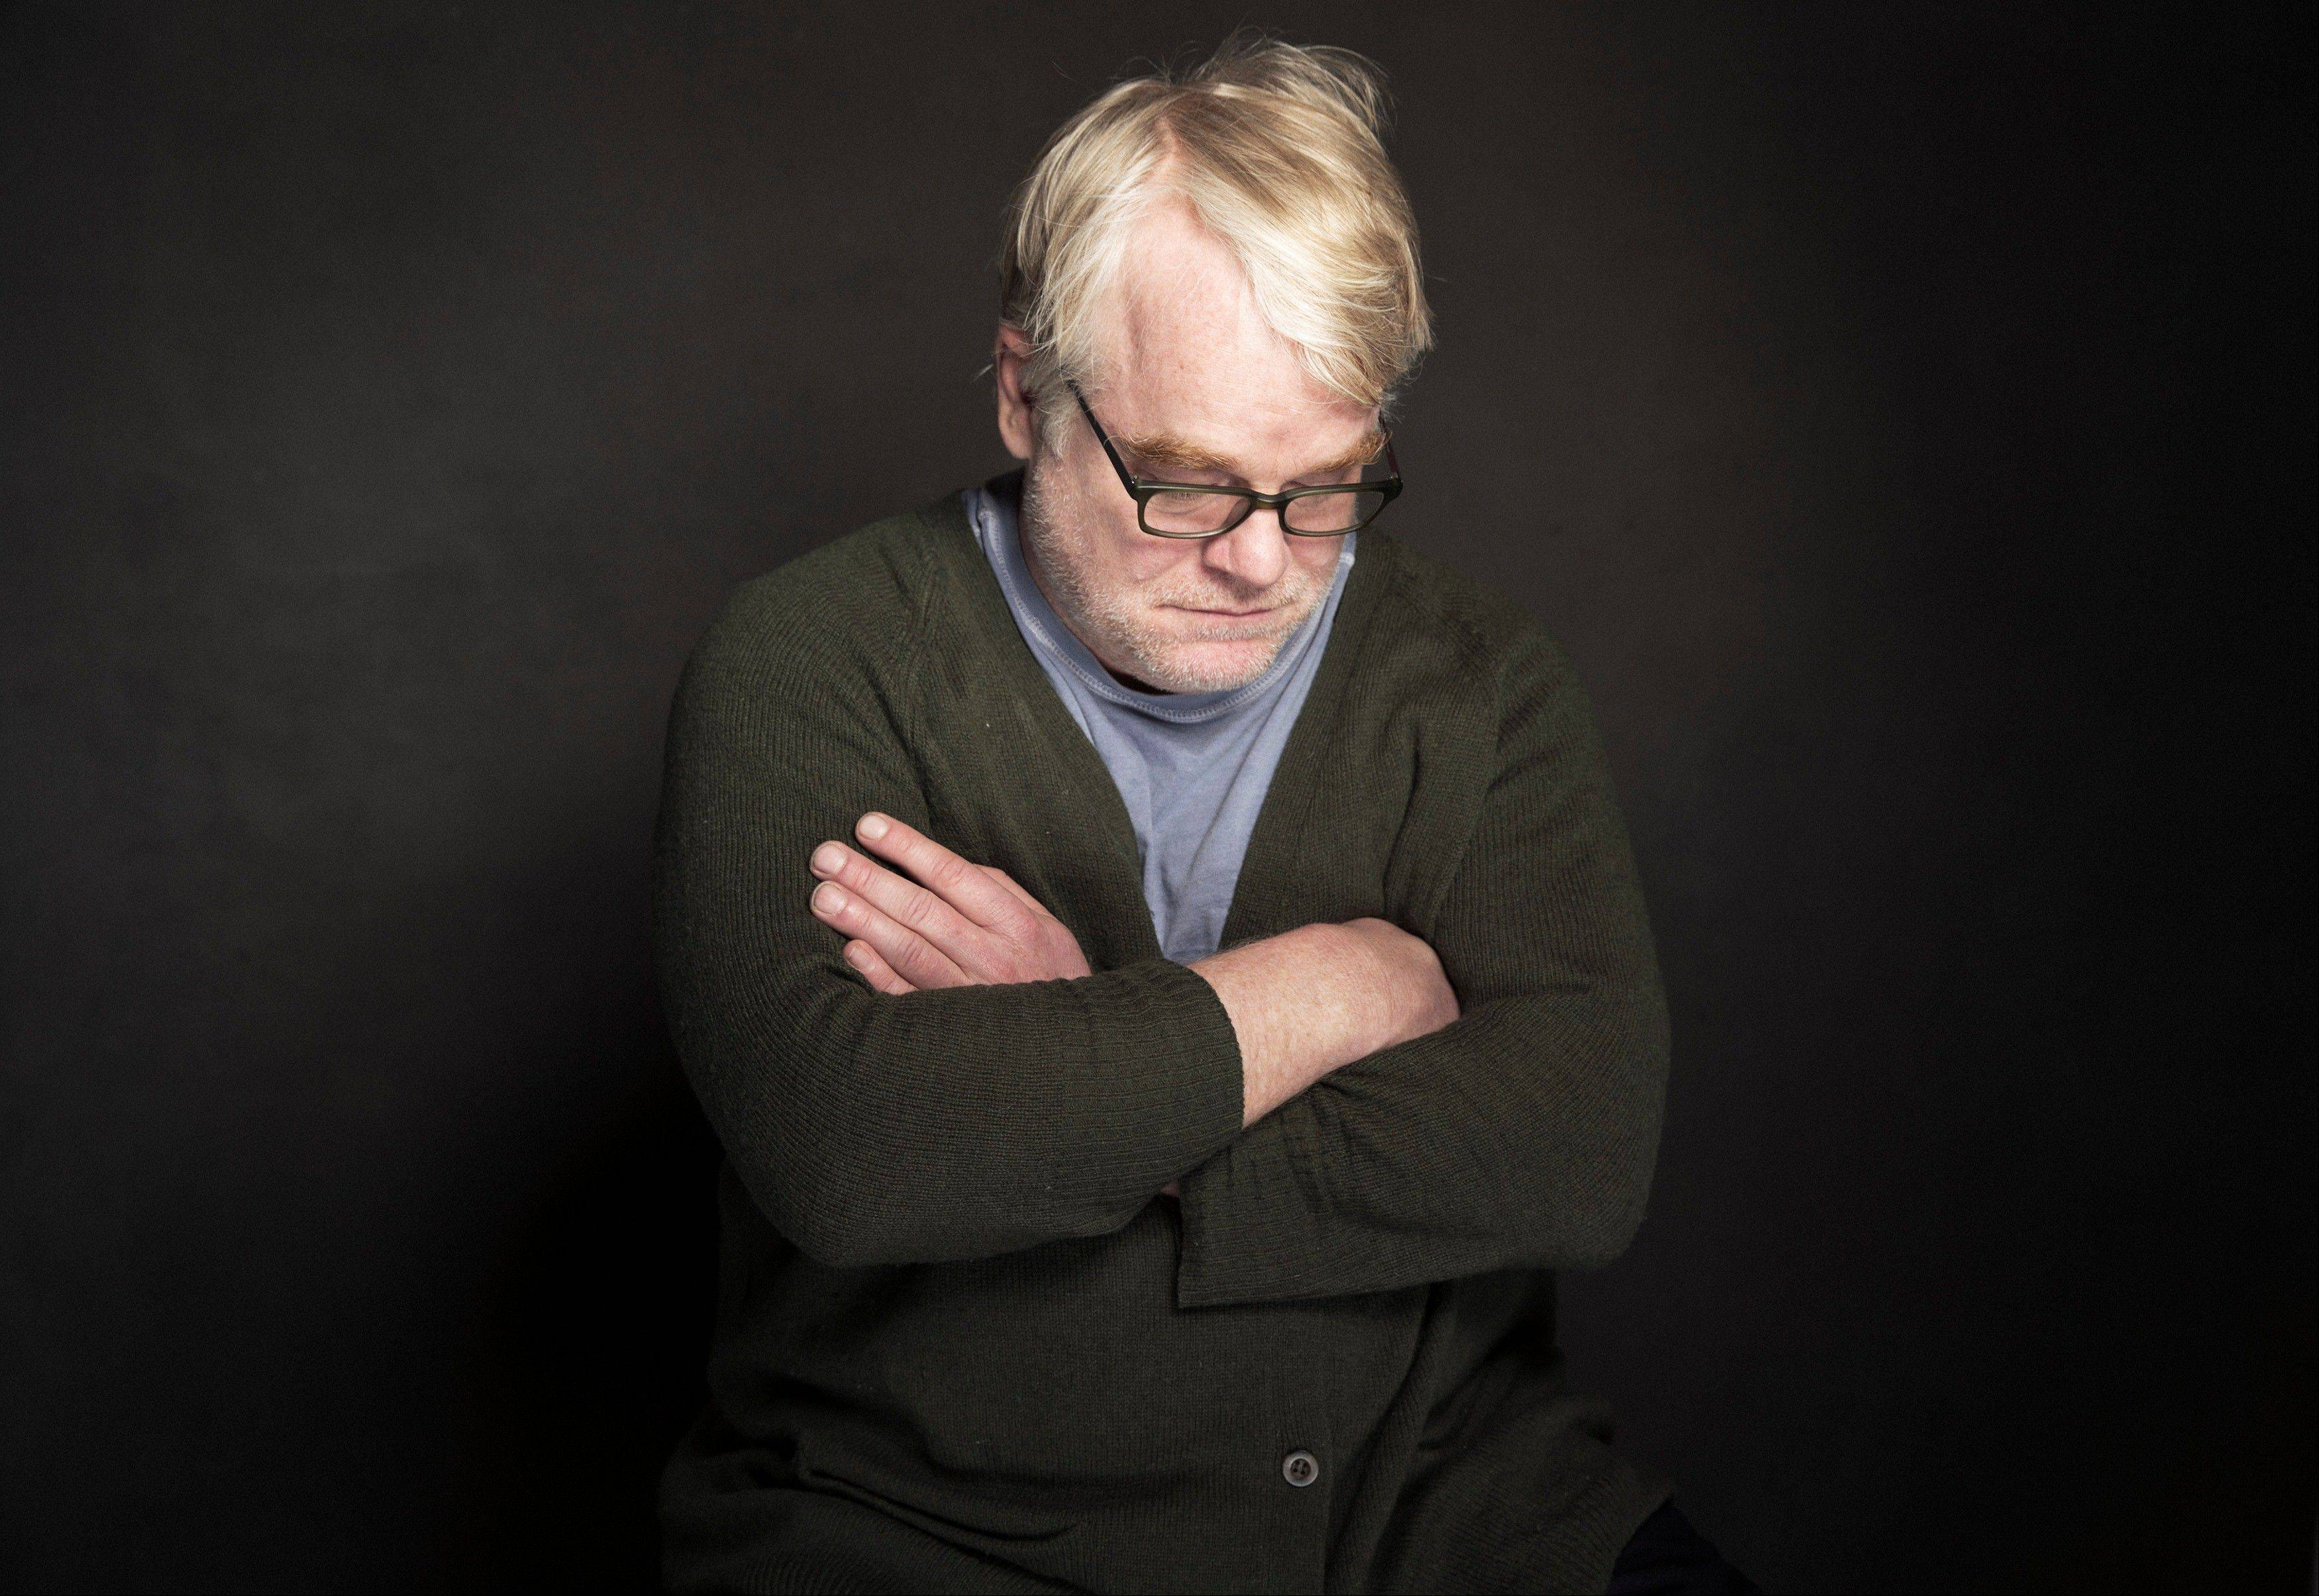 Philip Seymour Hoffman suffered from a chronic medical condition that required ongoing treatment. An admitted drug addict who first sought professional help more than two decades ago, Hoffman apparently succumbed to his illness with an overdose despite a return to rehab last March.